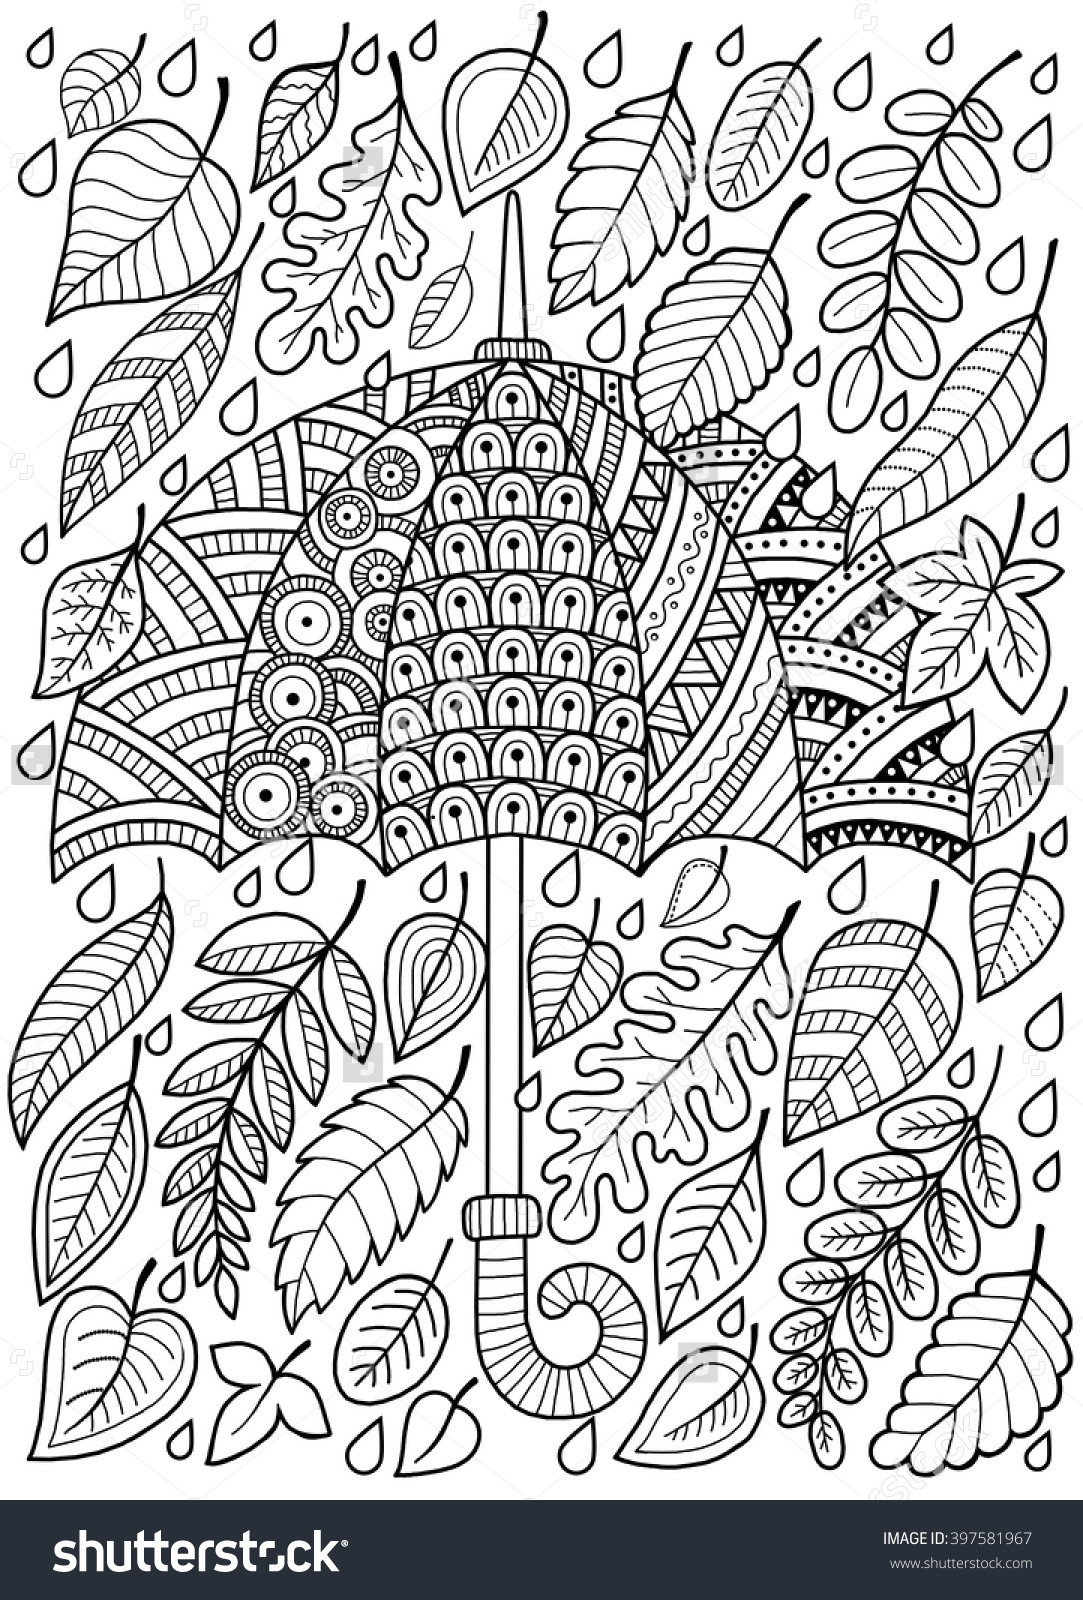 Autumn Coloring Pages For Adults  Autumn Coloring Pages For Adults – Color Bros